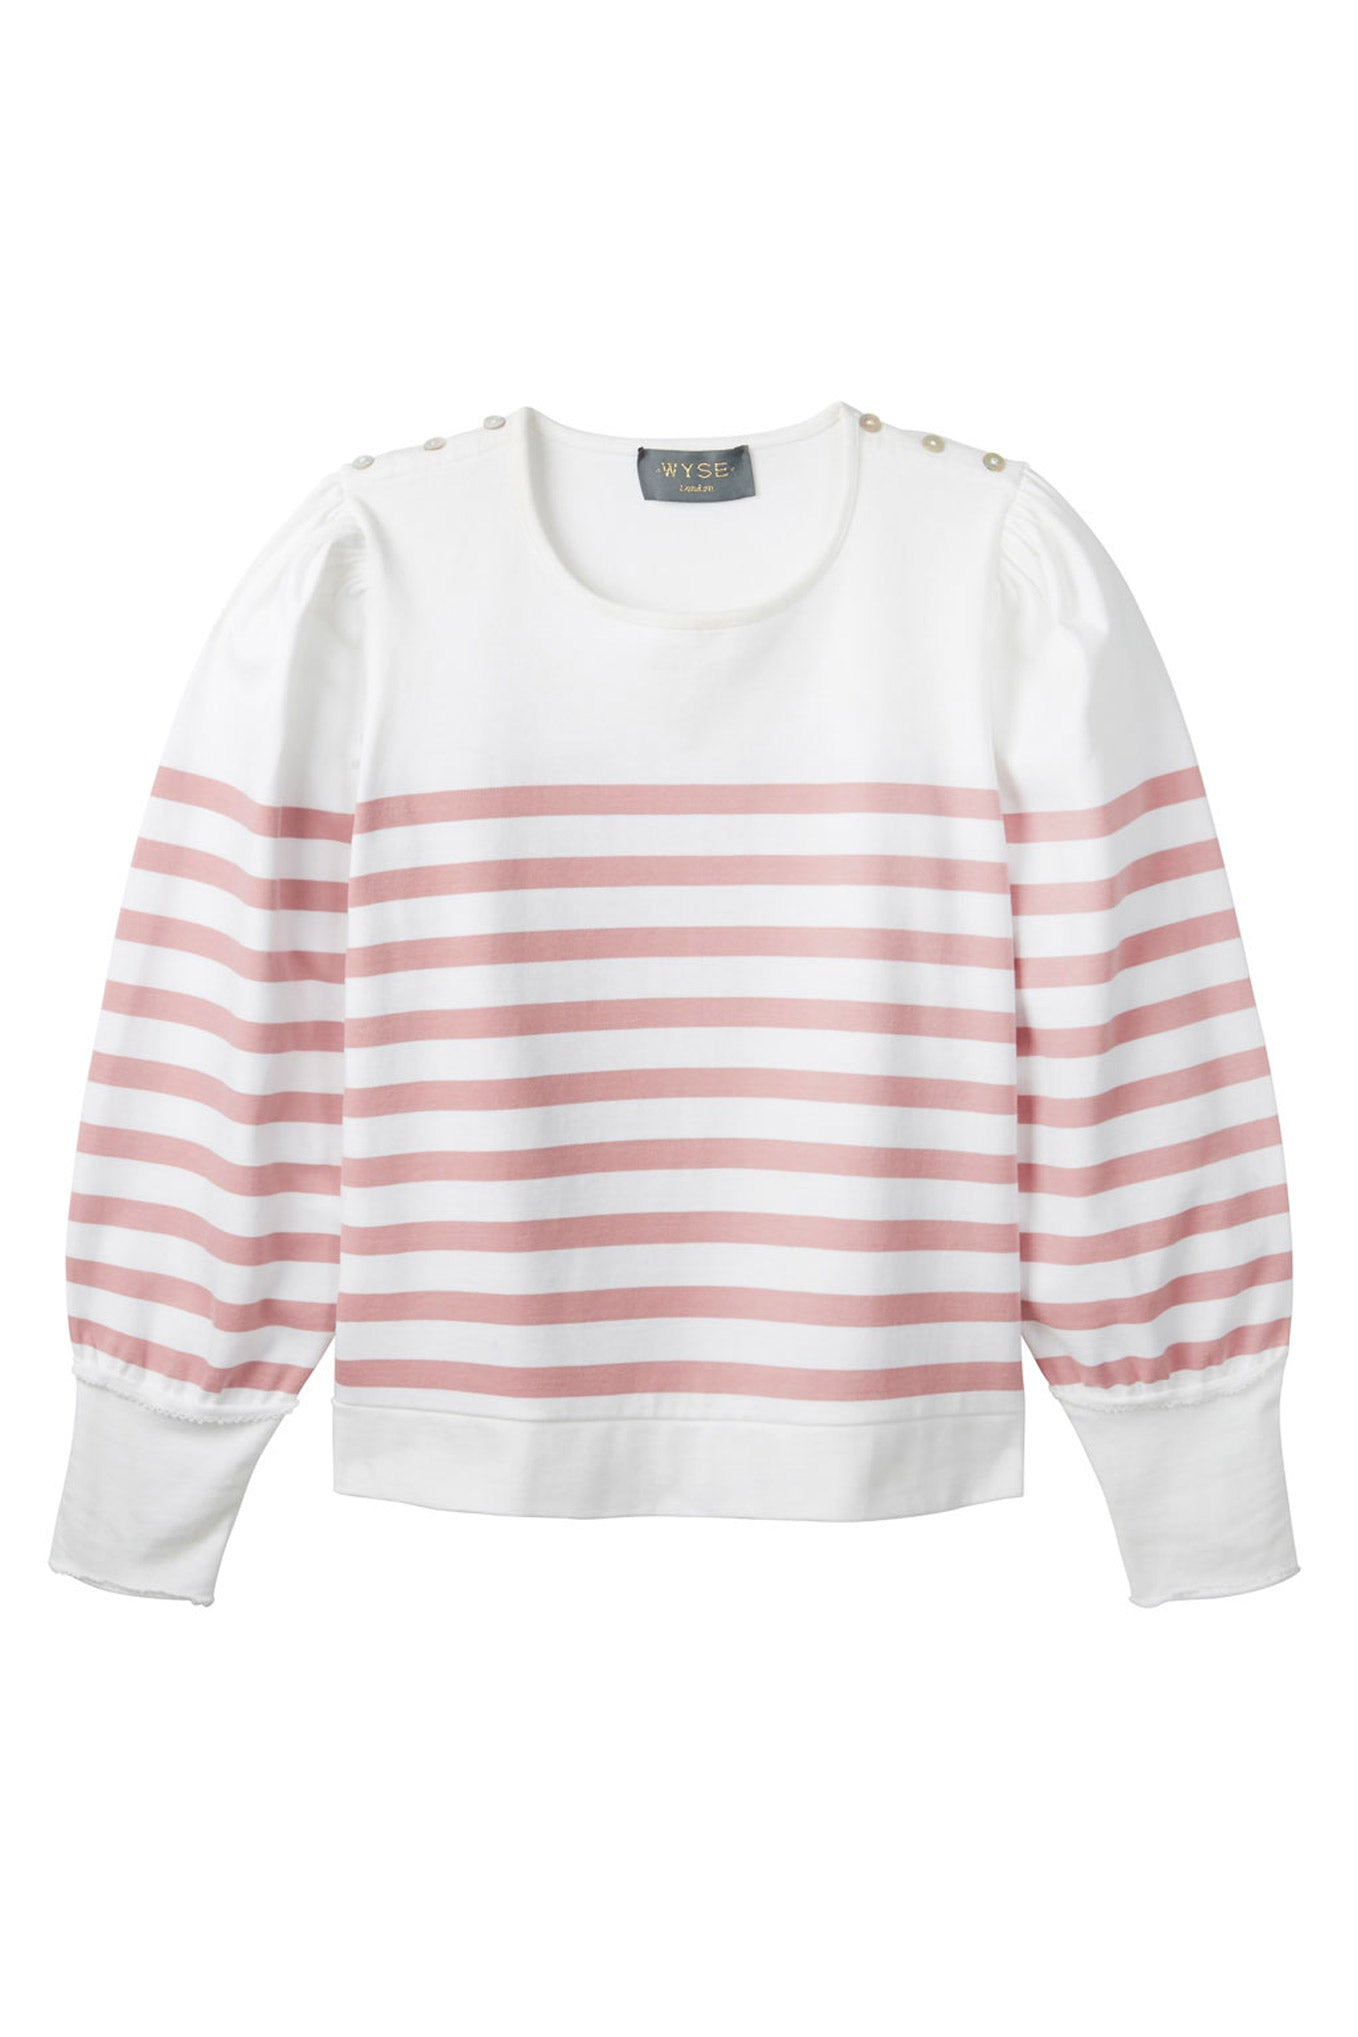 Lightweight Amelie Breton Puff Sleeve Stripe Top - White/Pink